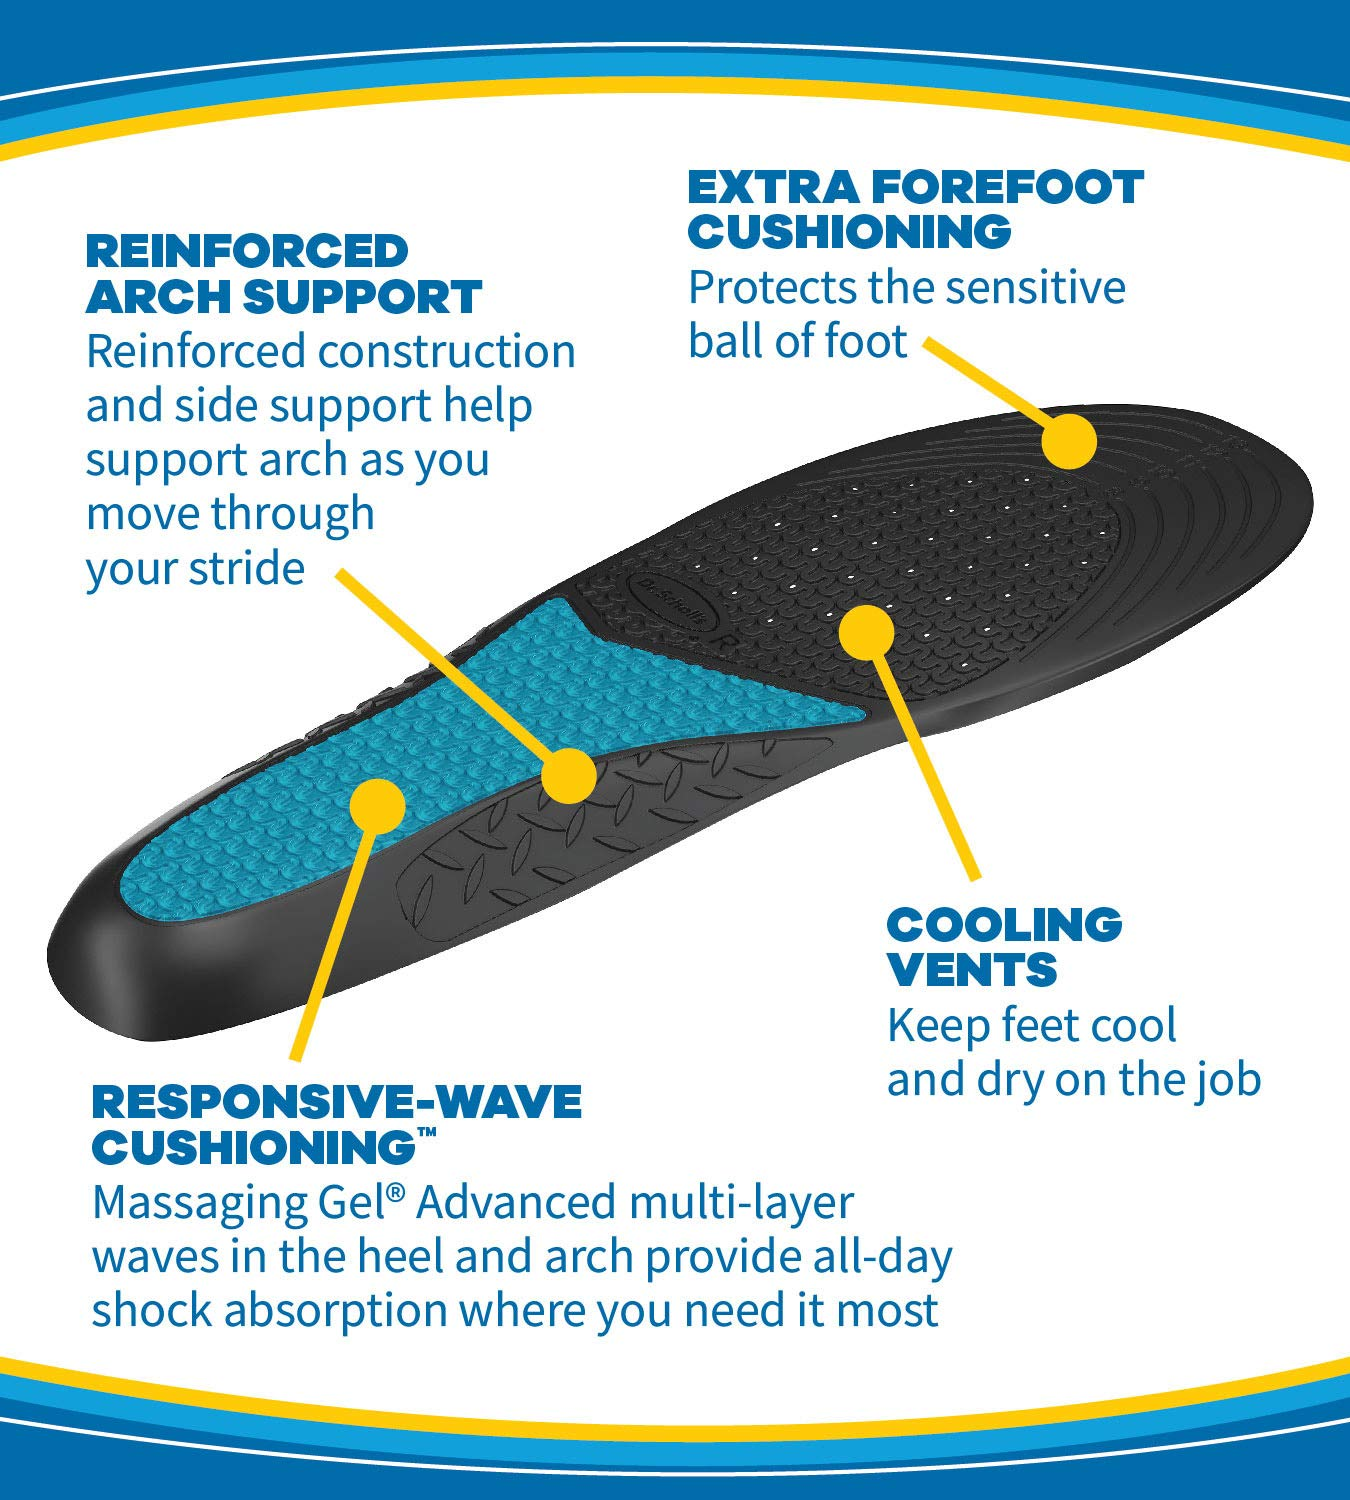 995773c2dd Amazon.com: Dr. Scholl's WORK Massaging Gel Advanced Insoles (Men's 8-14,  Women's 6-10) // All-Day Shock Absorption and Cushioning for Hard Surfaces  ...